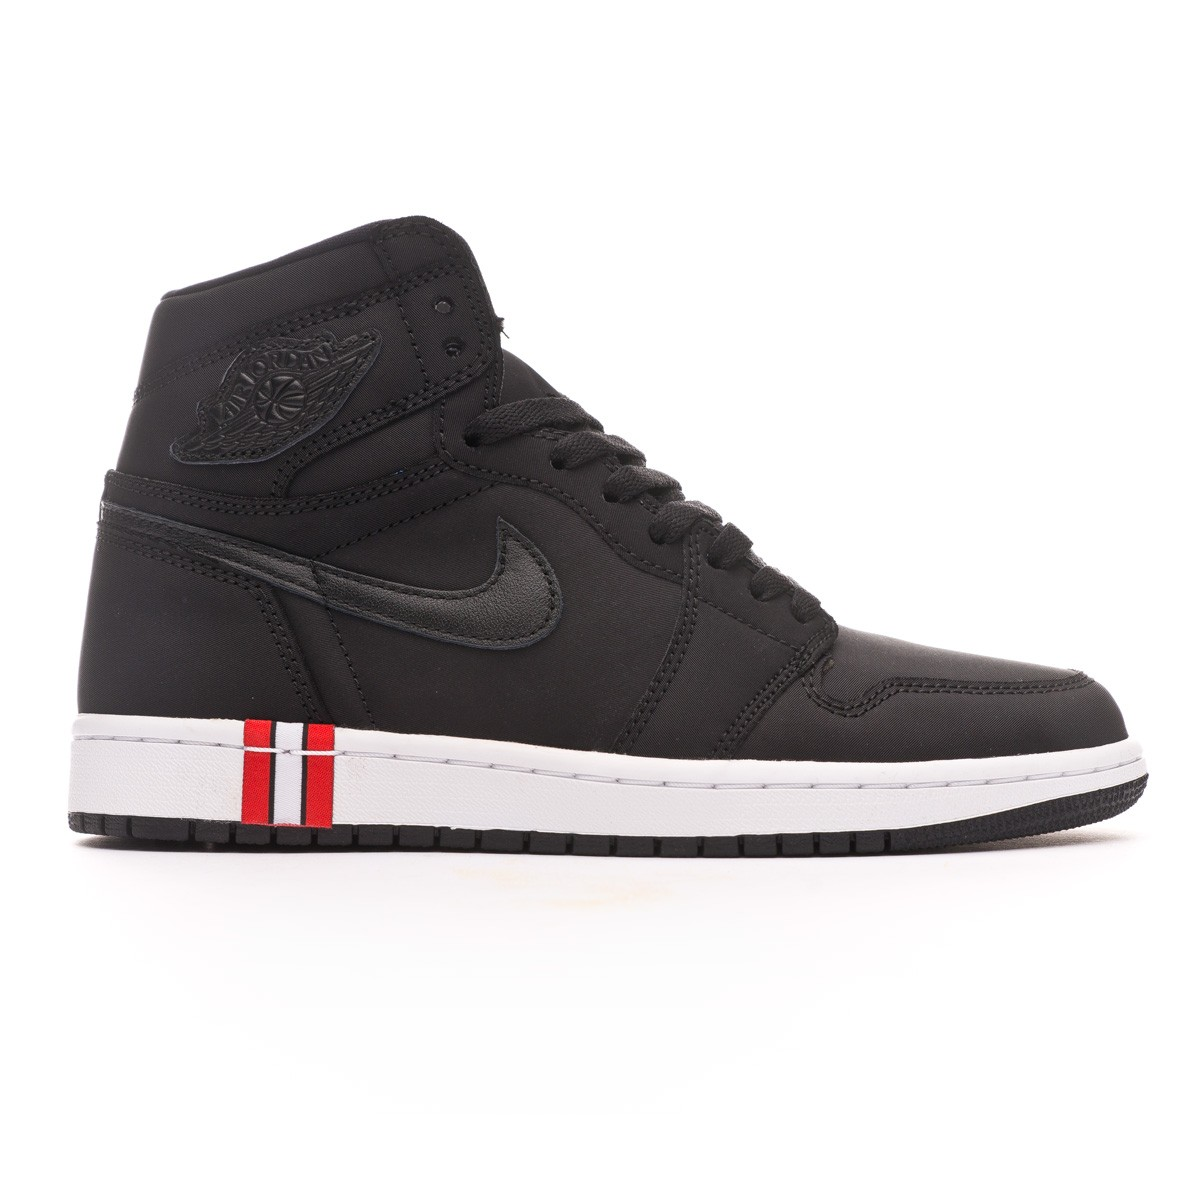 Trainers Nike Air Jordan 1 Retro Hi OG Jordan x PSG Black-Challenge red-White  - Football store Fútbol Emotion a787dc61d